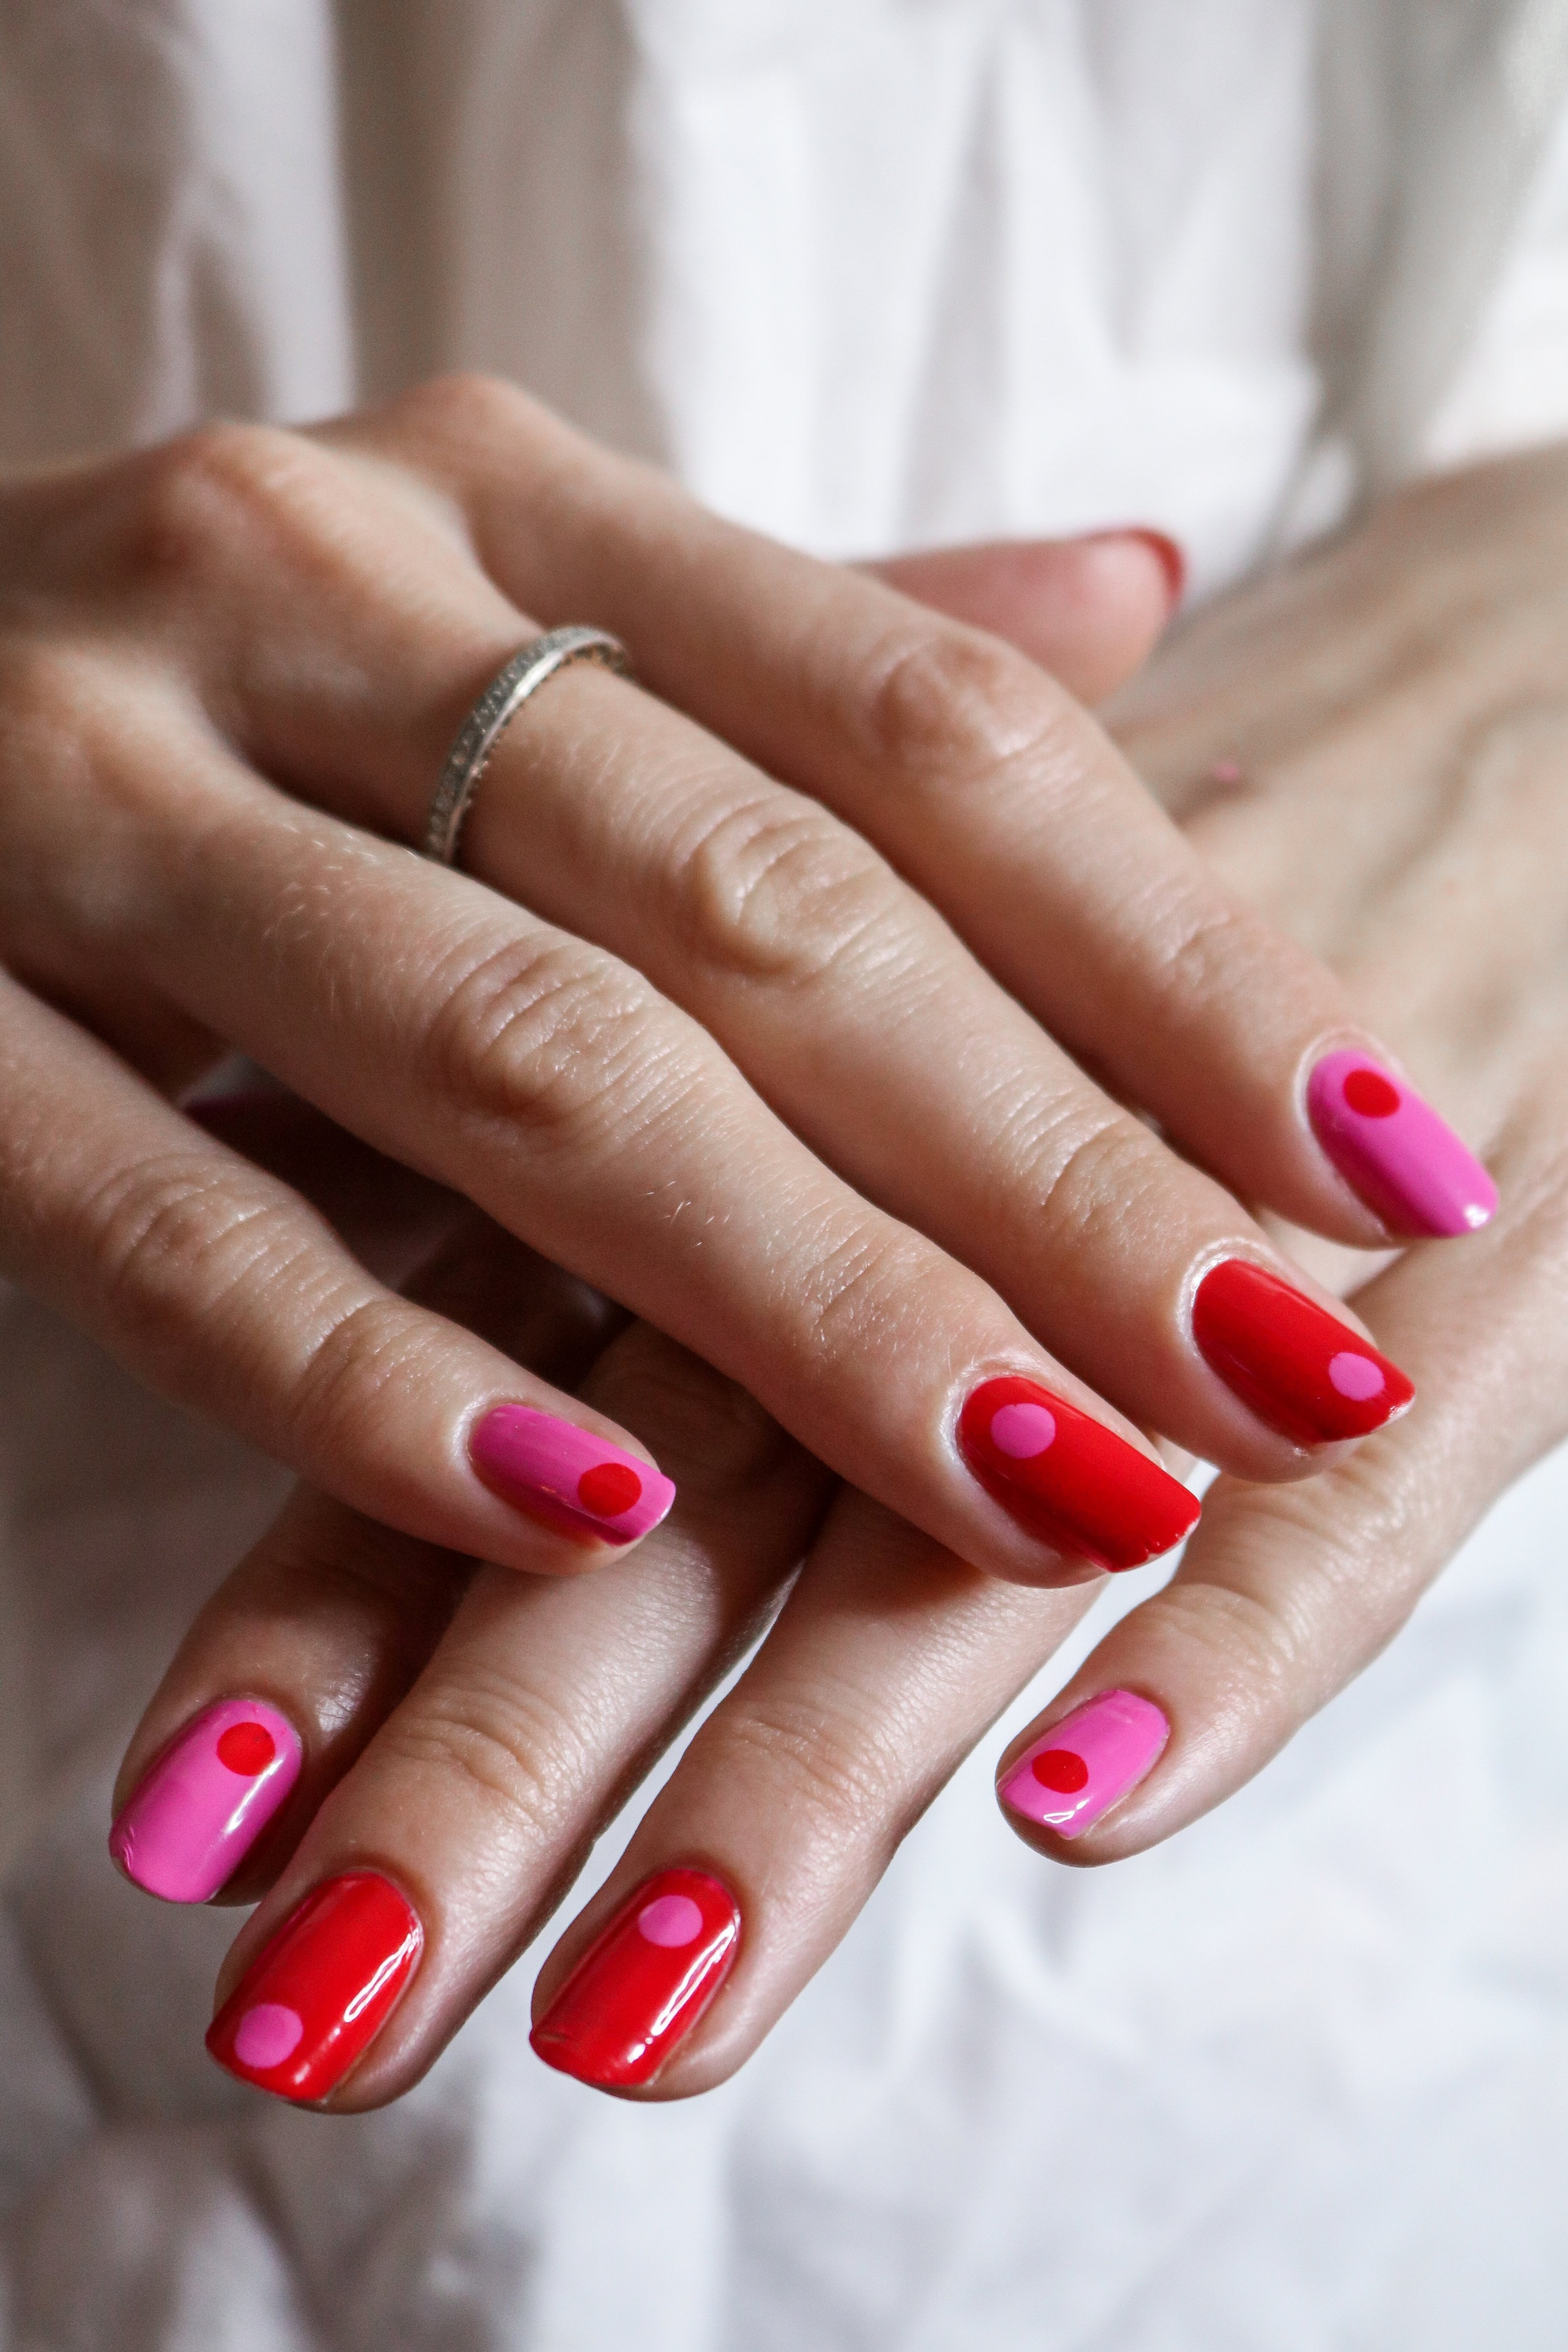 The+Hungarian+Brunette+Red+and+Pink+30+second+Q-tip+nail+art+%283+of+3%29.jpg